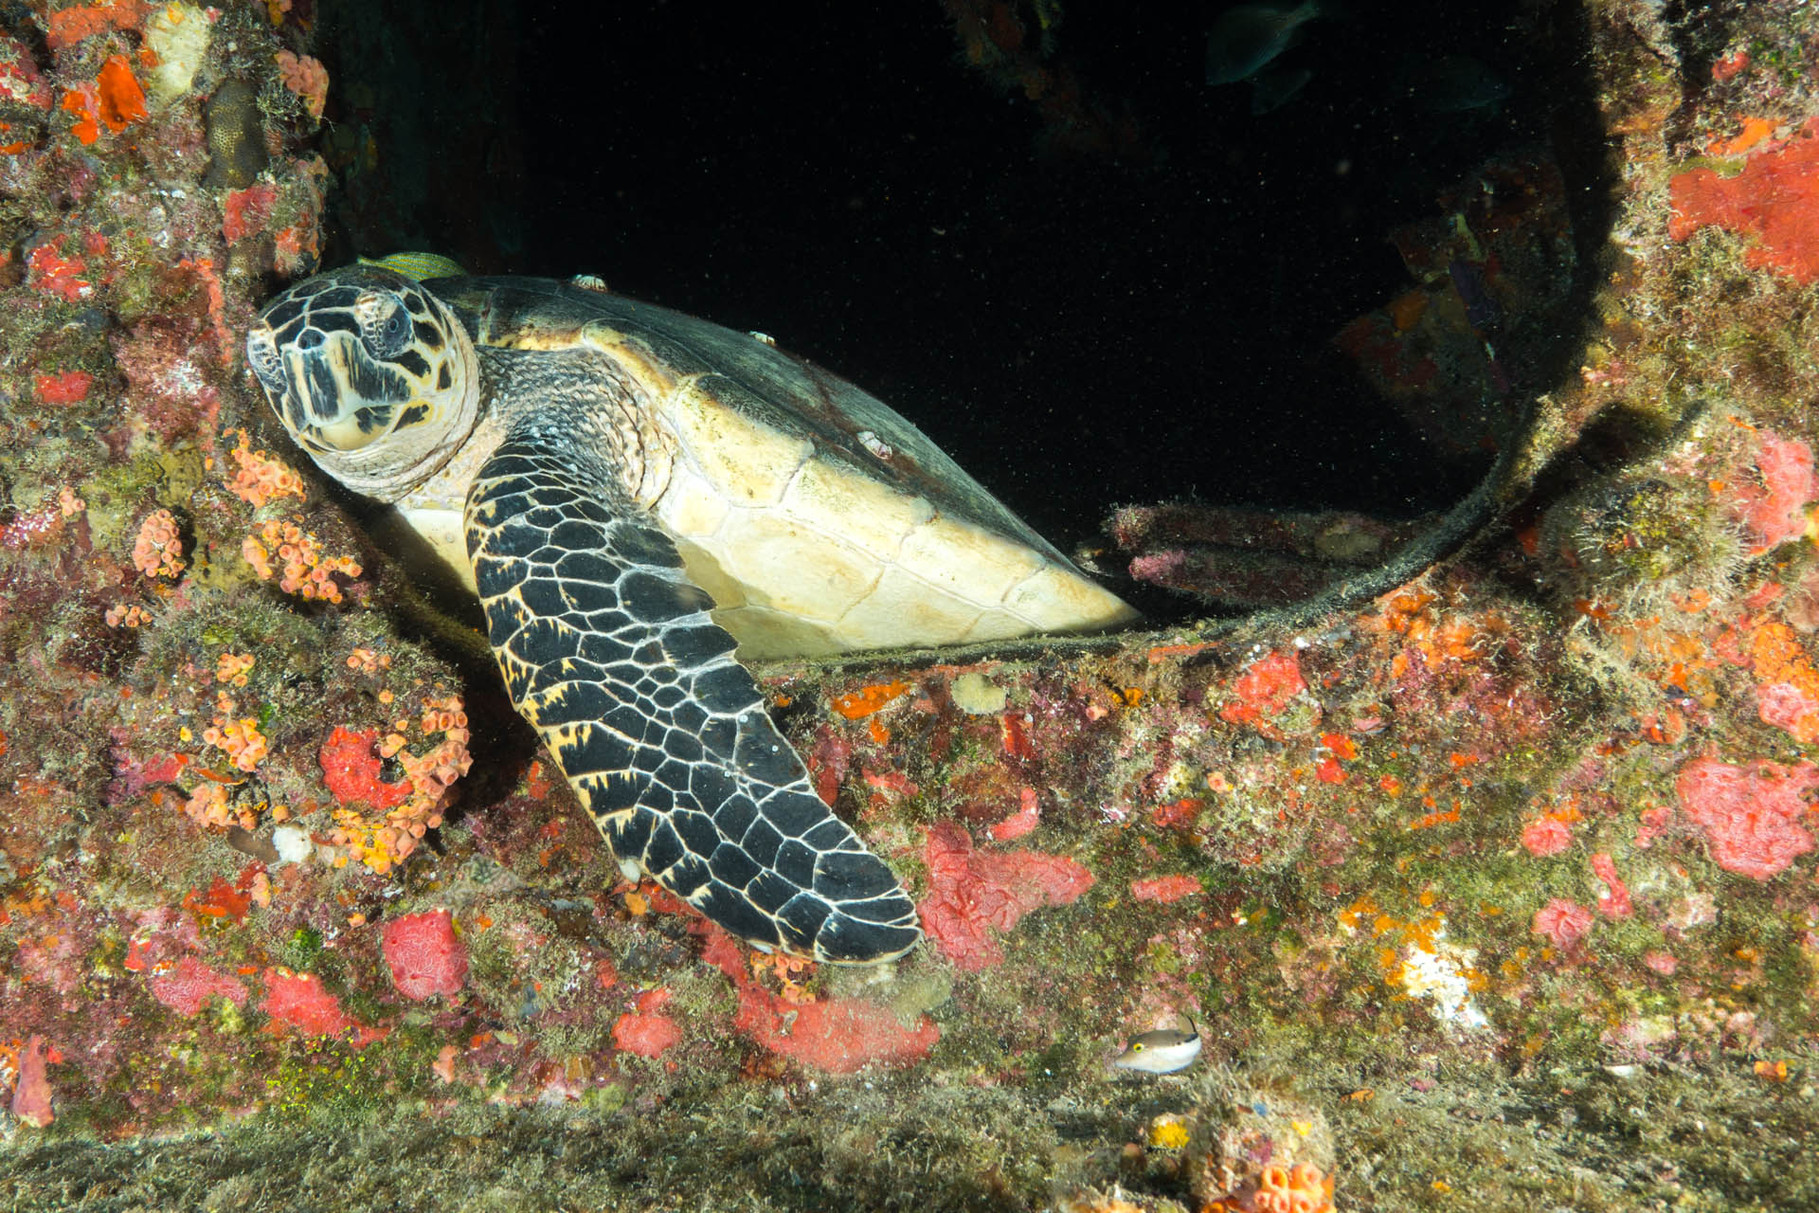 Resident turtle at Duane wreck, Key Largo